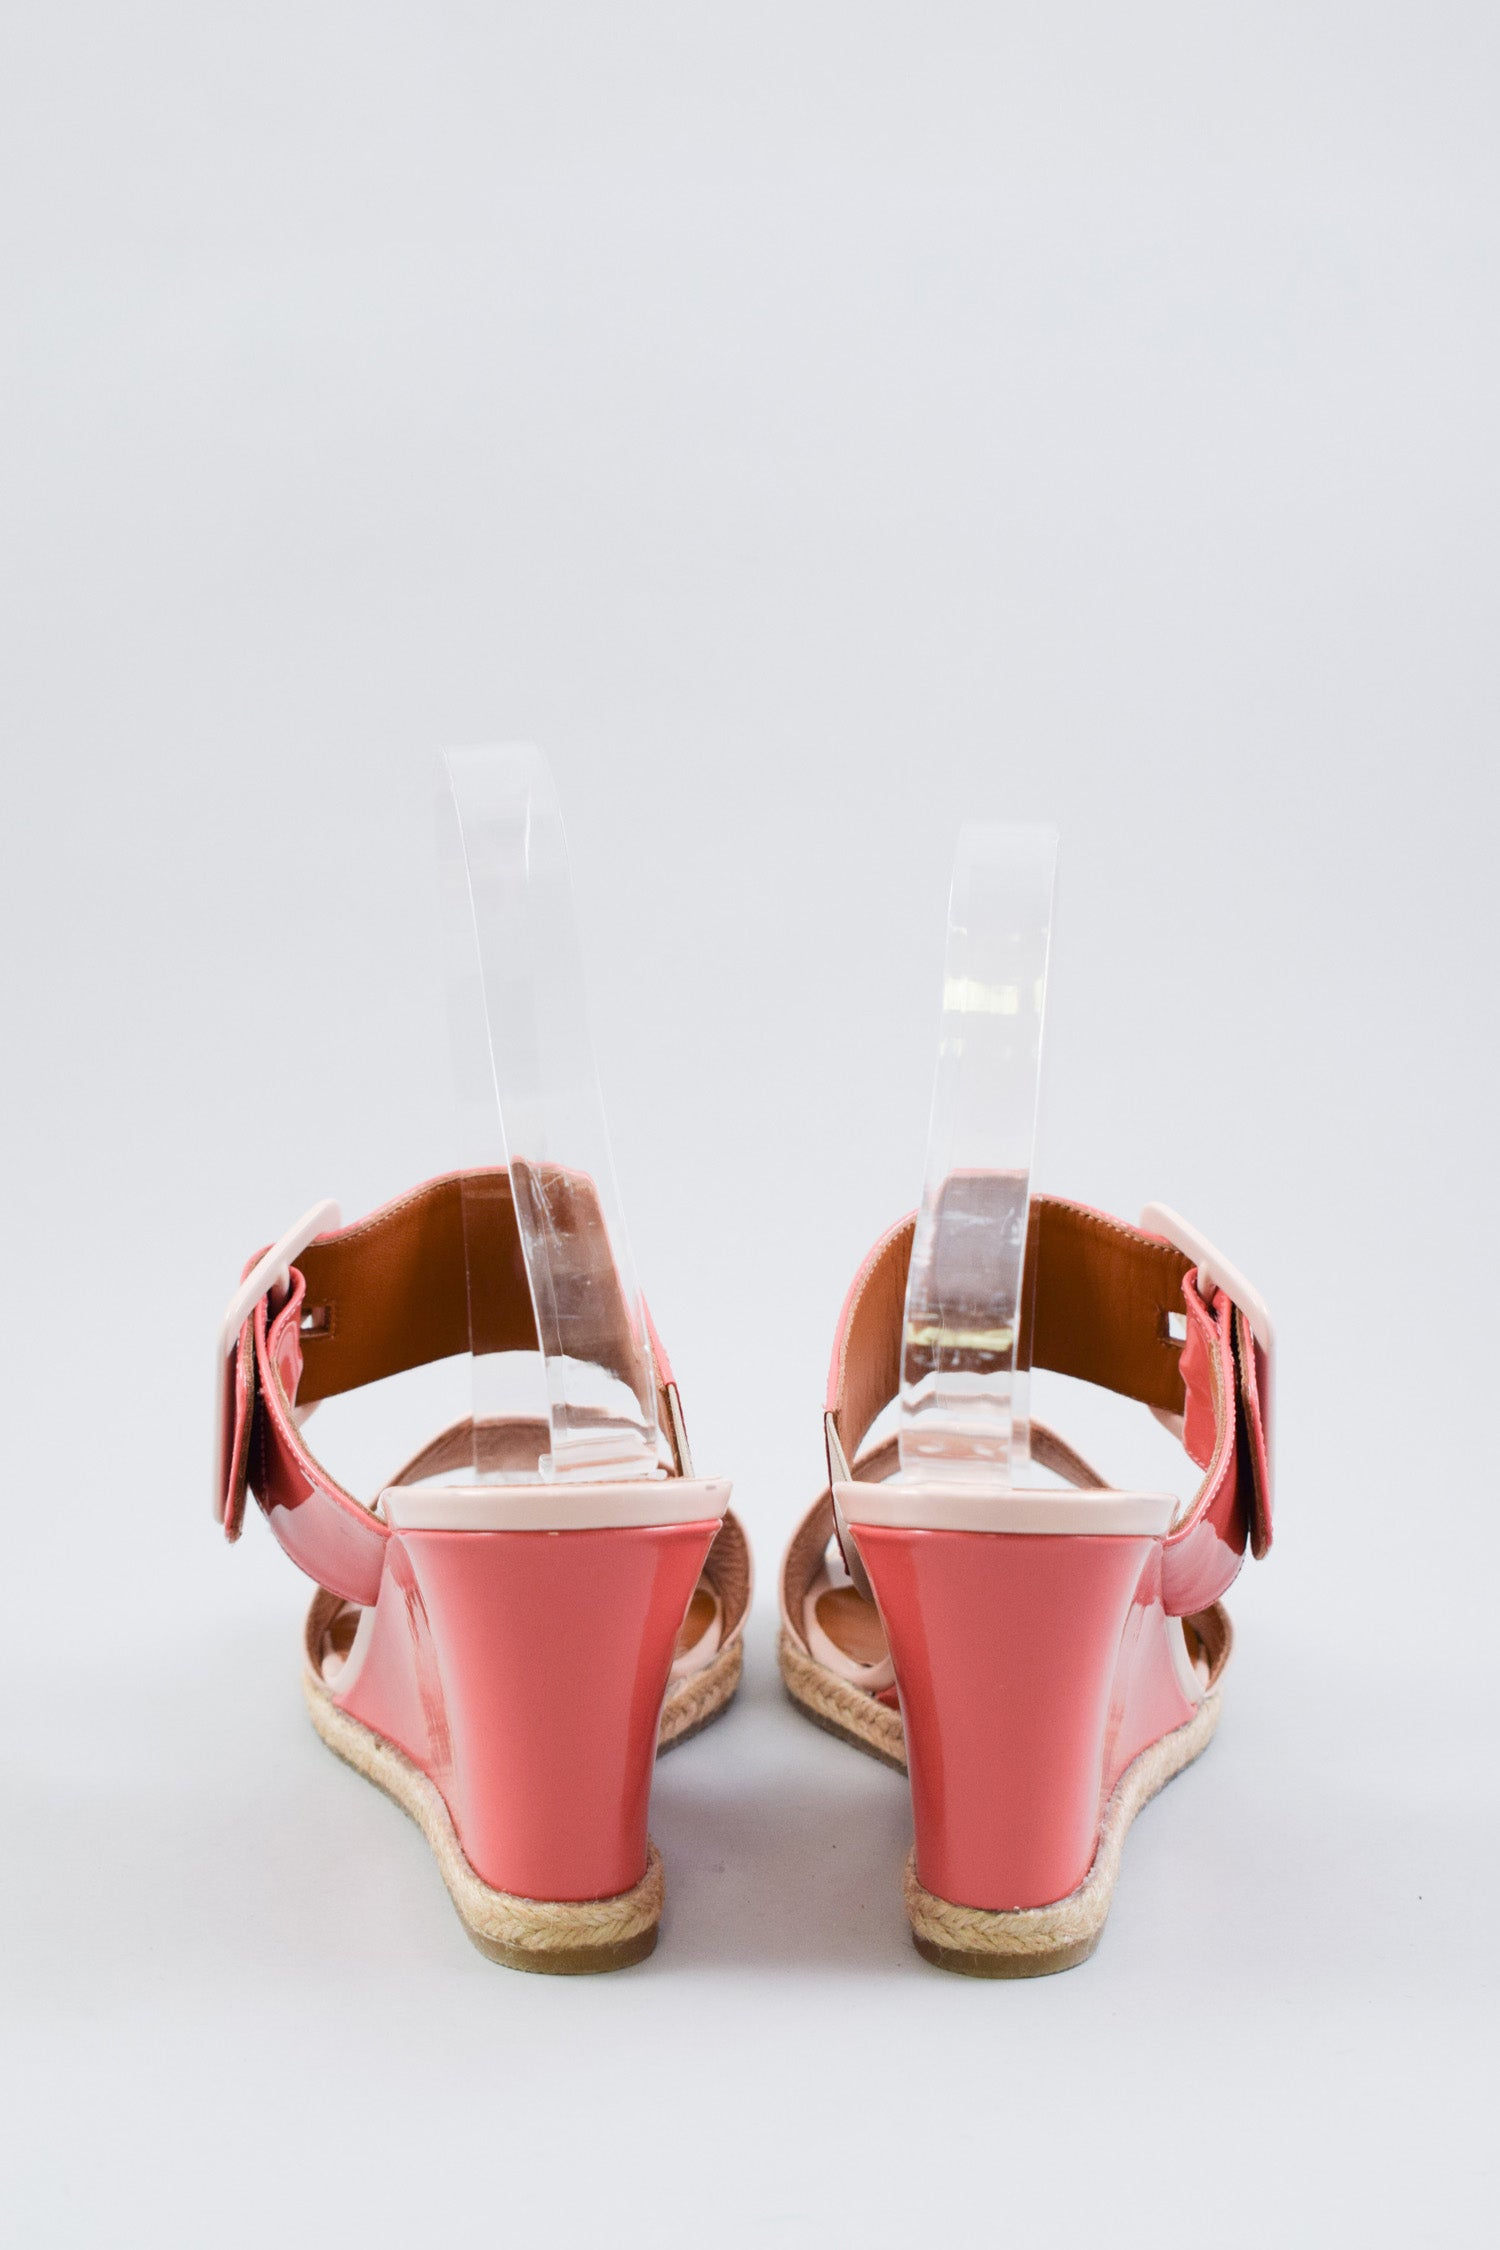 Fendi Pink Contrast Patent Wedges Size 38